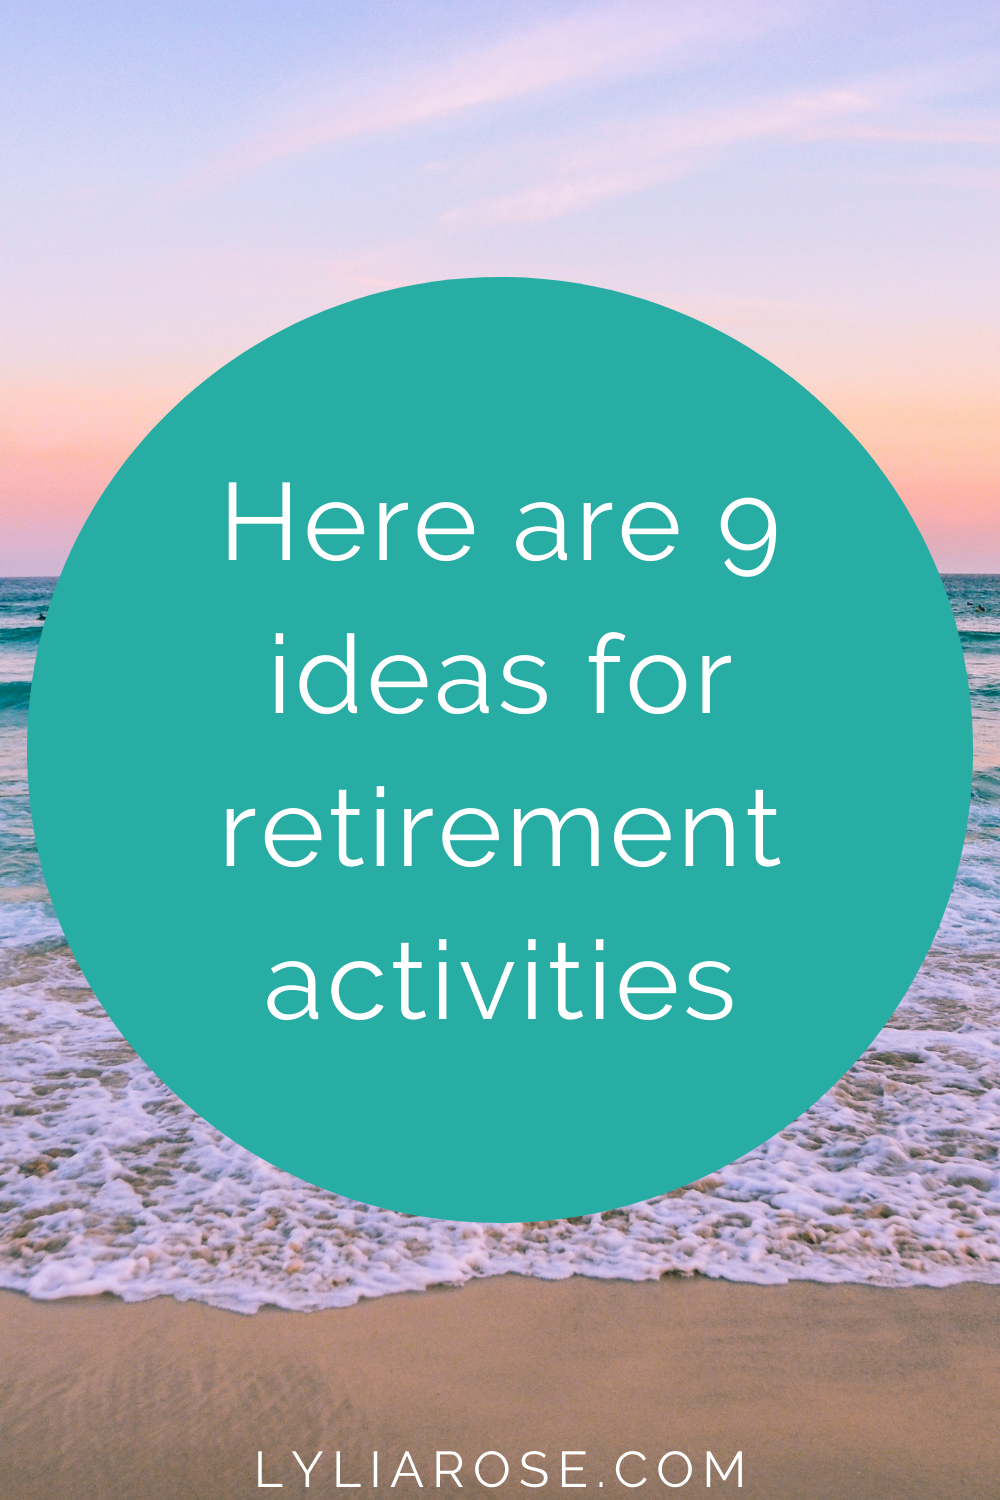 Here are 9 ideas for retirement activities